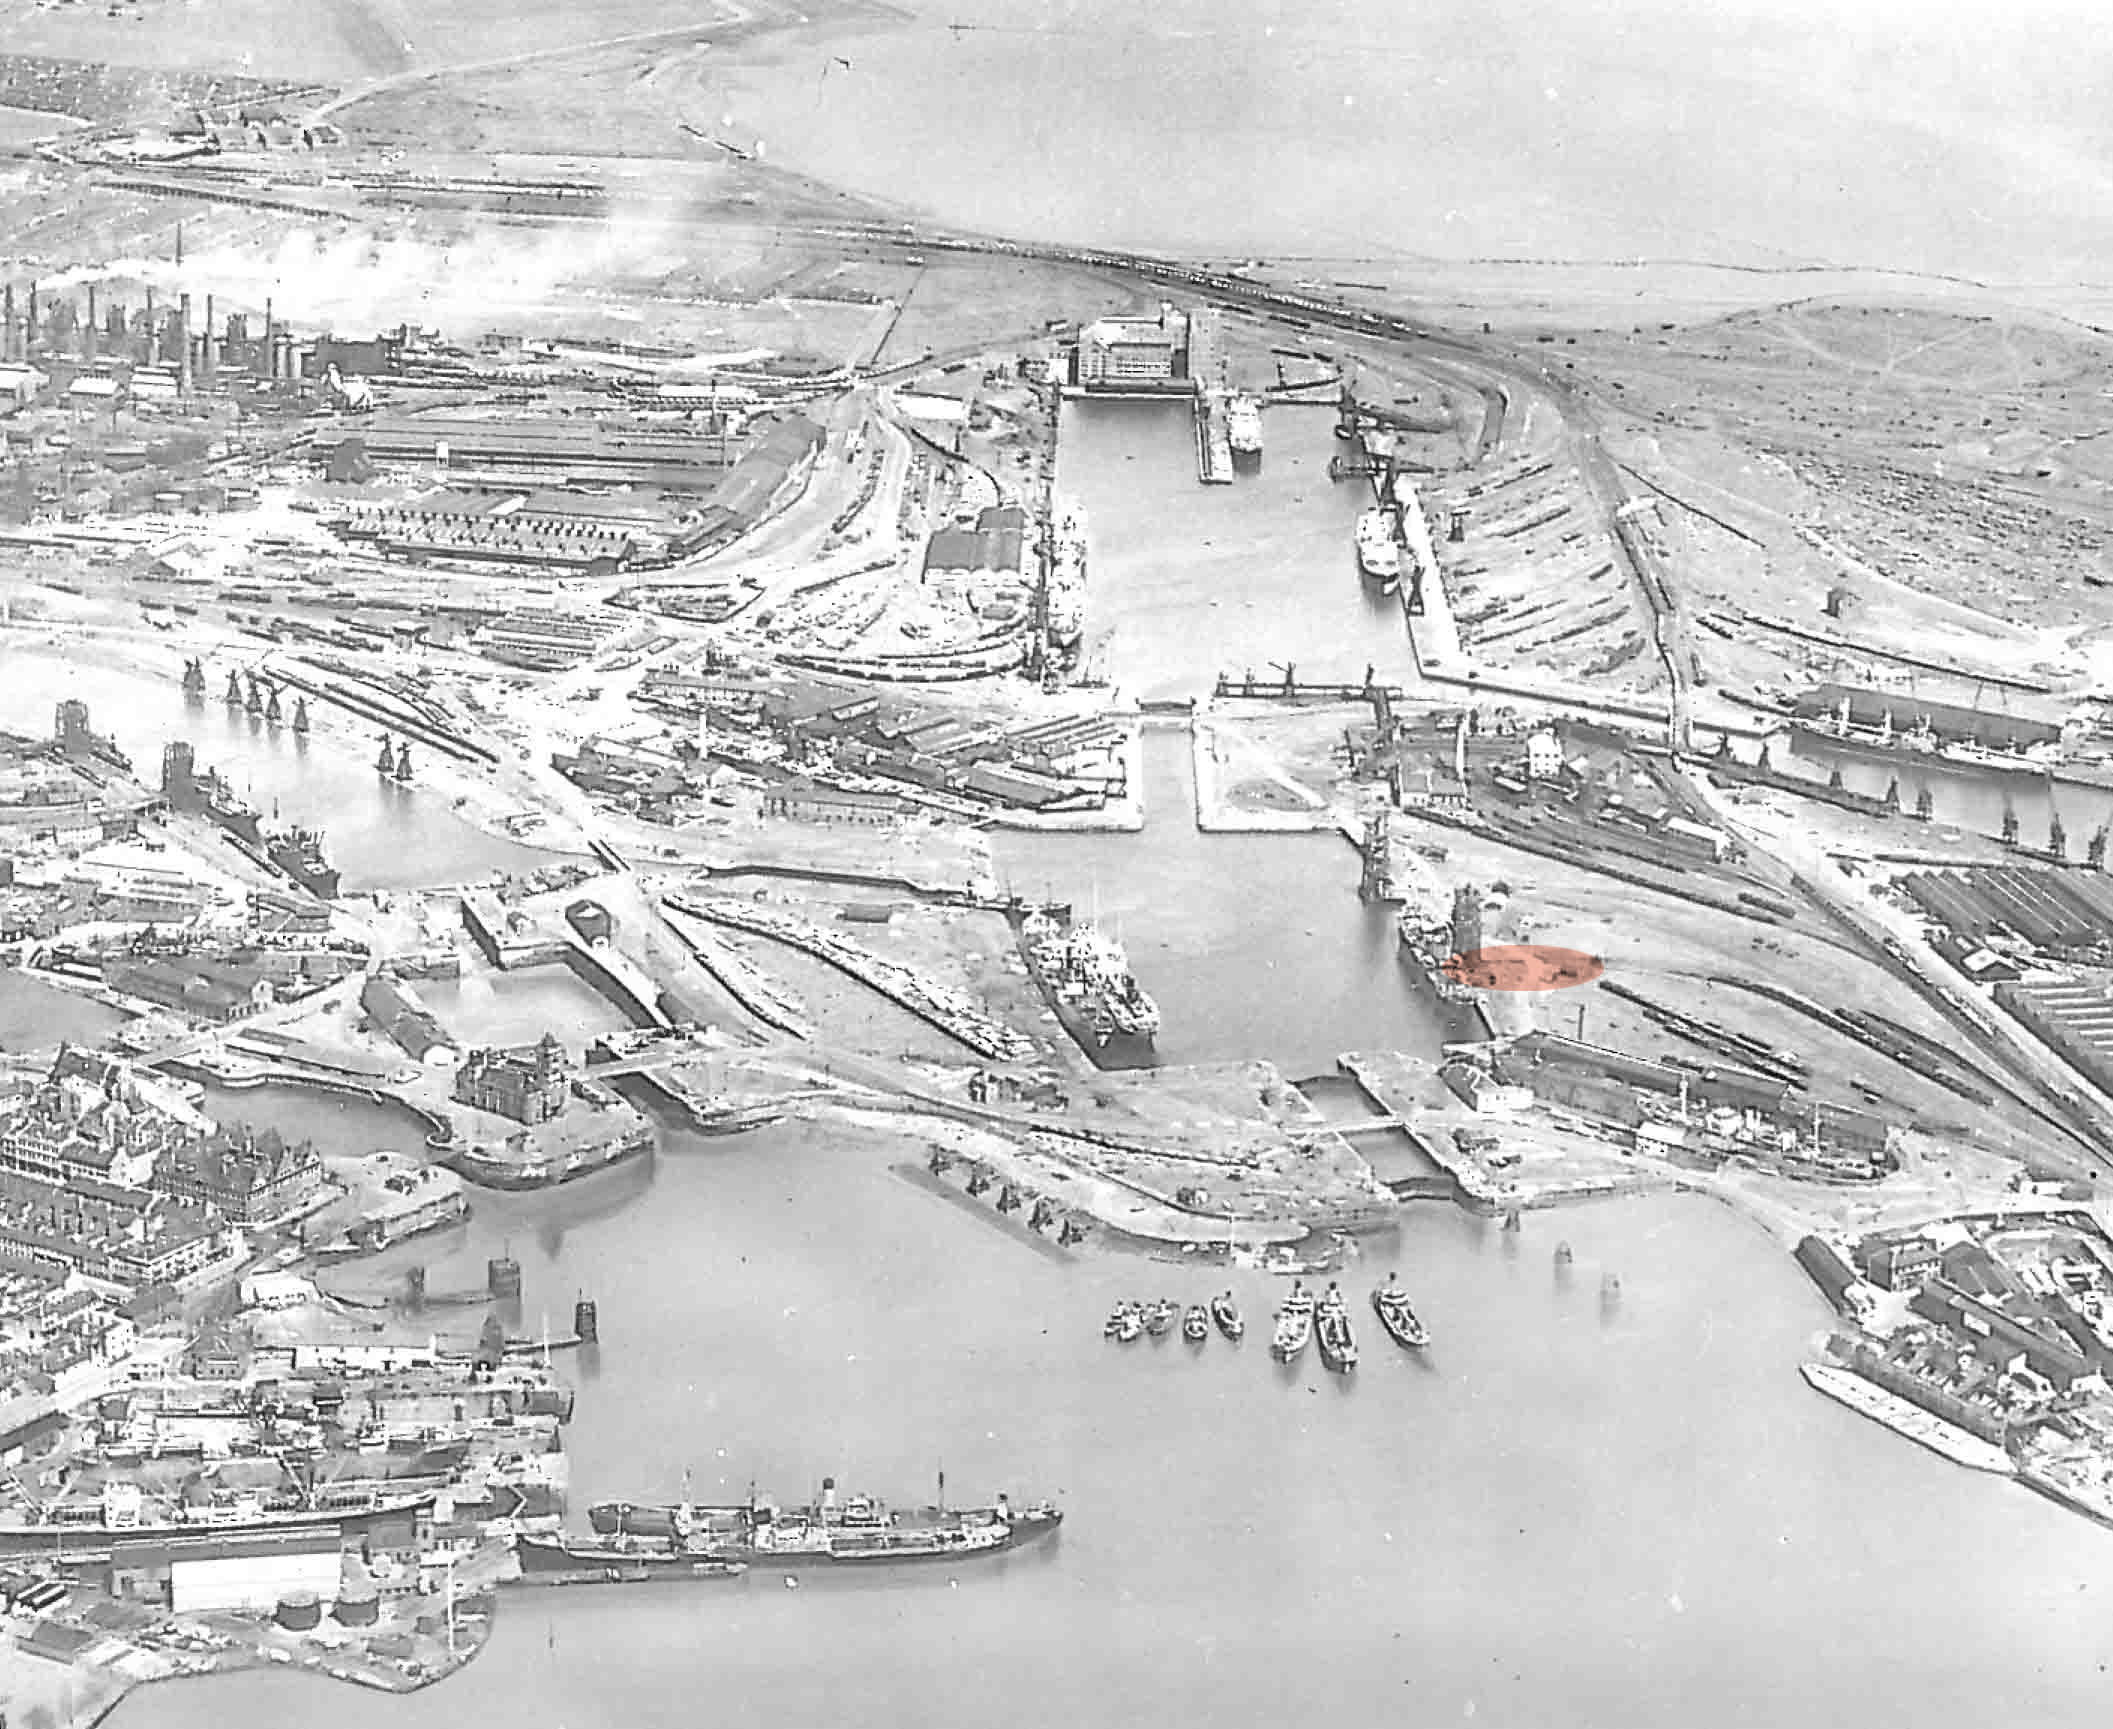 Historic aerial view of Cardiff Bay with the site of Gloworks by Ash Sakula Architects